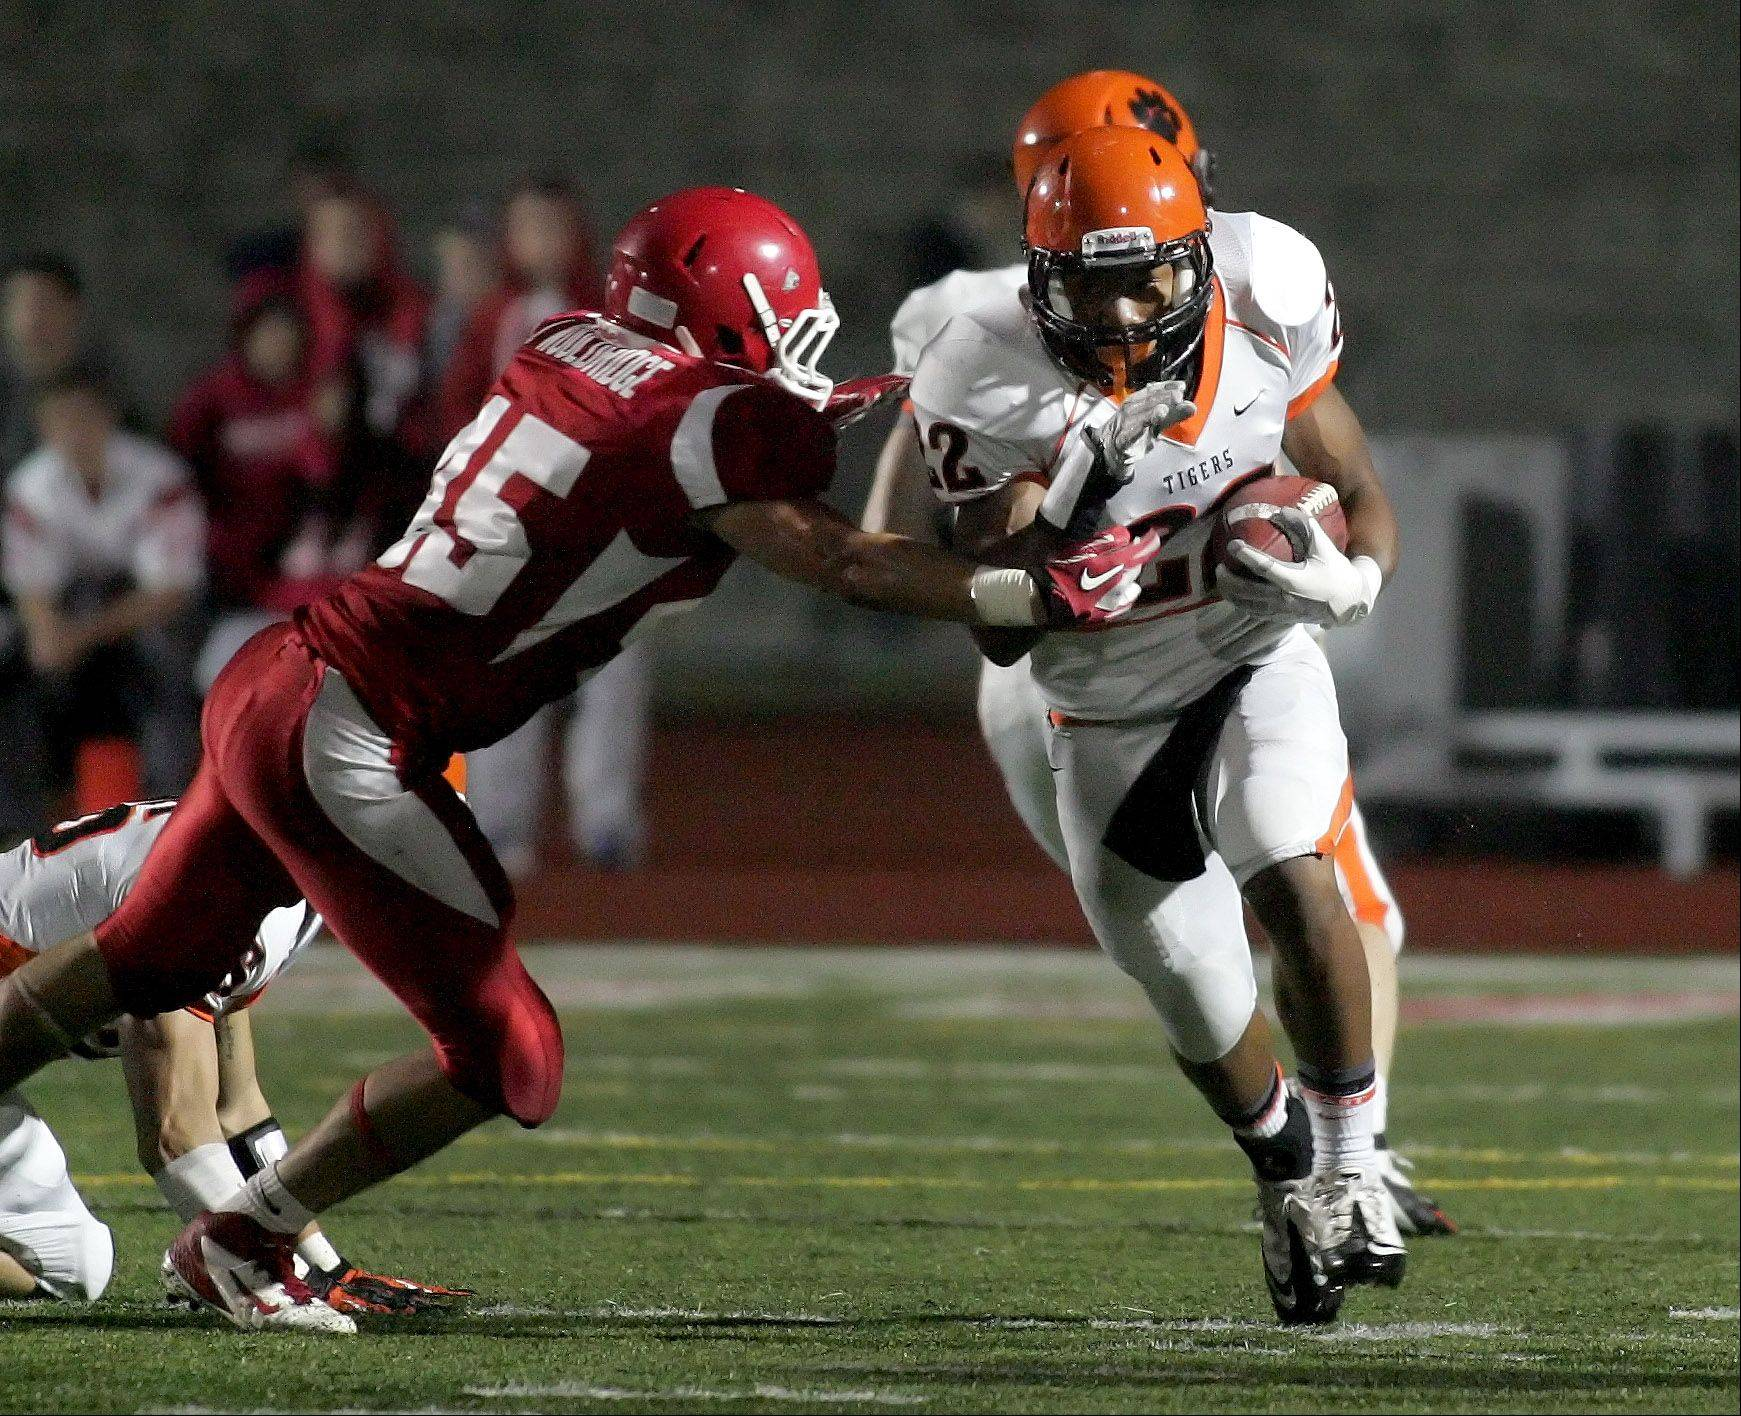 Jack Wooldridge of Naperville Central, left, moves in to tackle Brandon Adams of Wheaton Warrenville South.